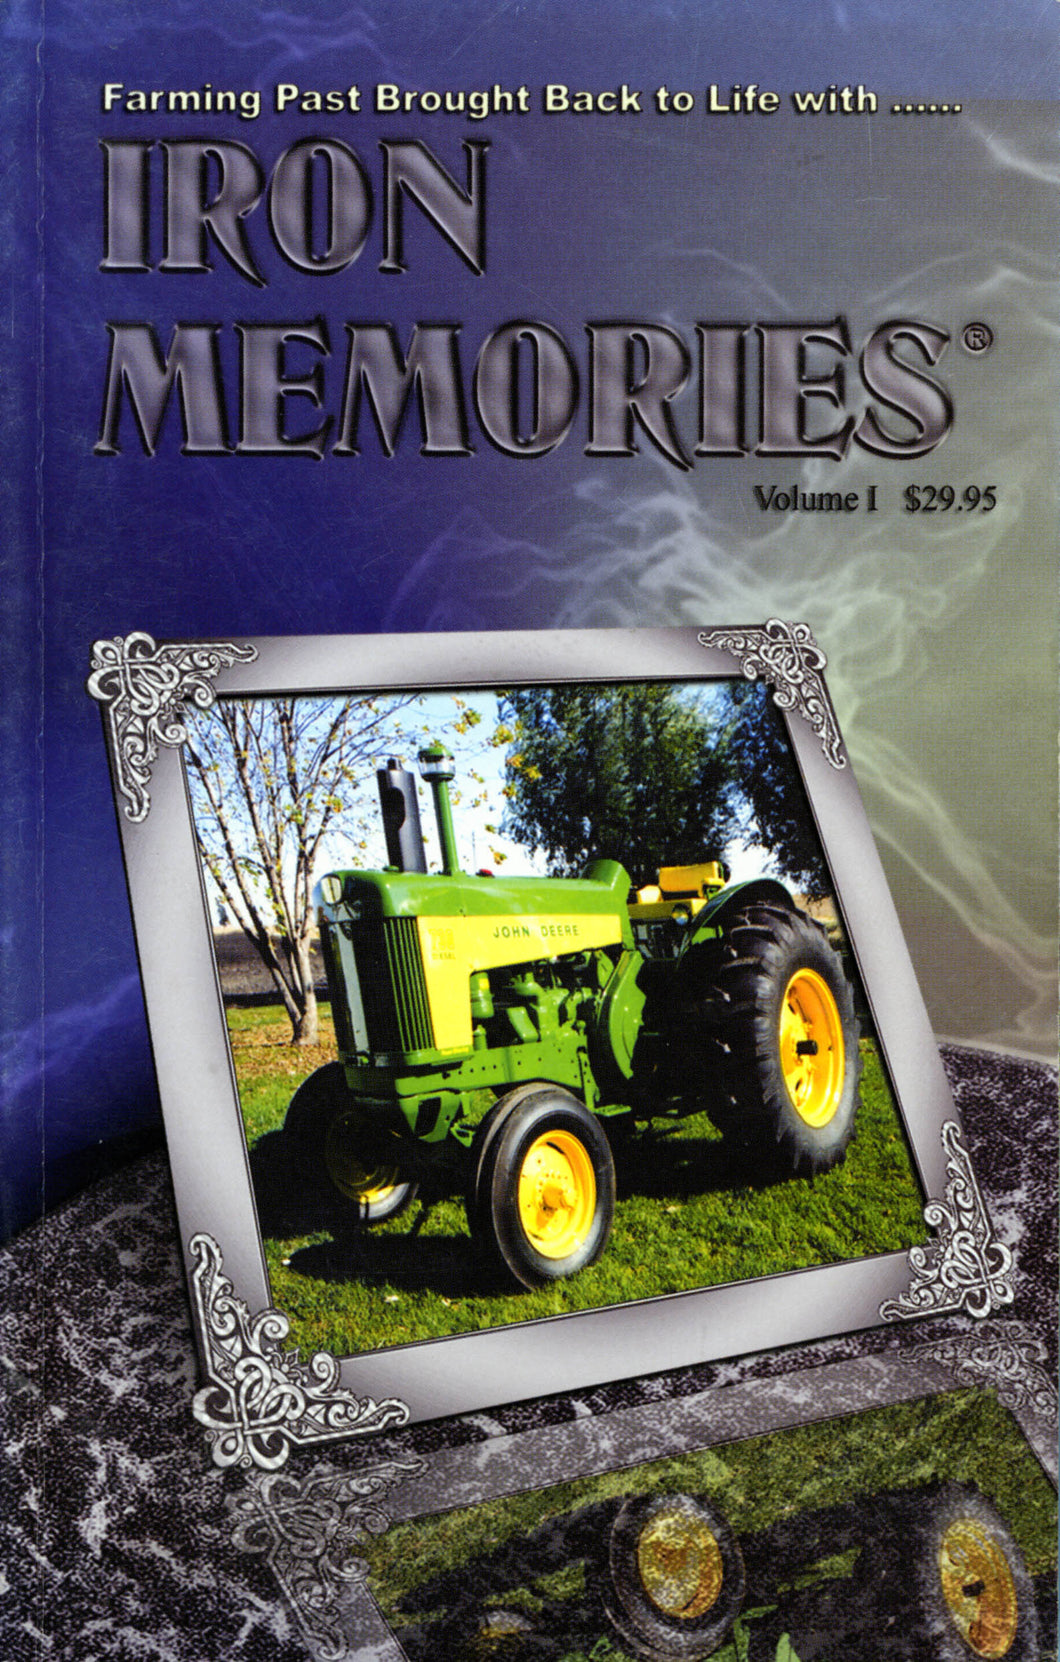 Iron Memories Volume I